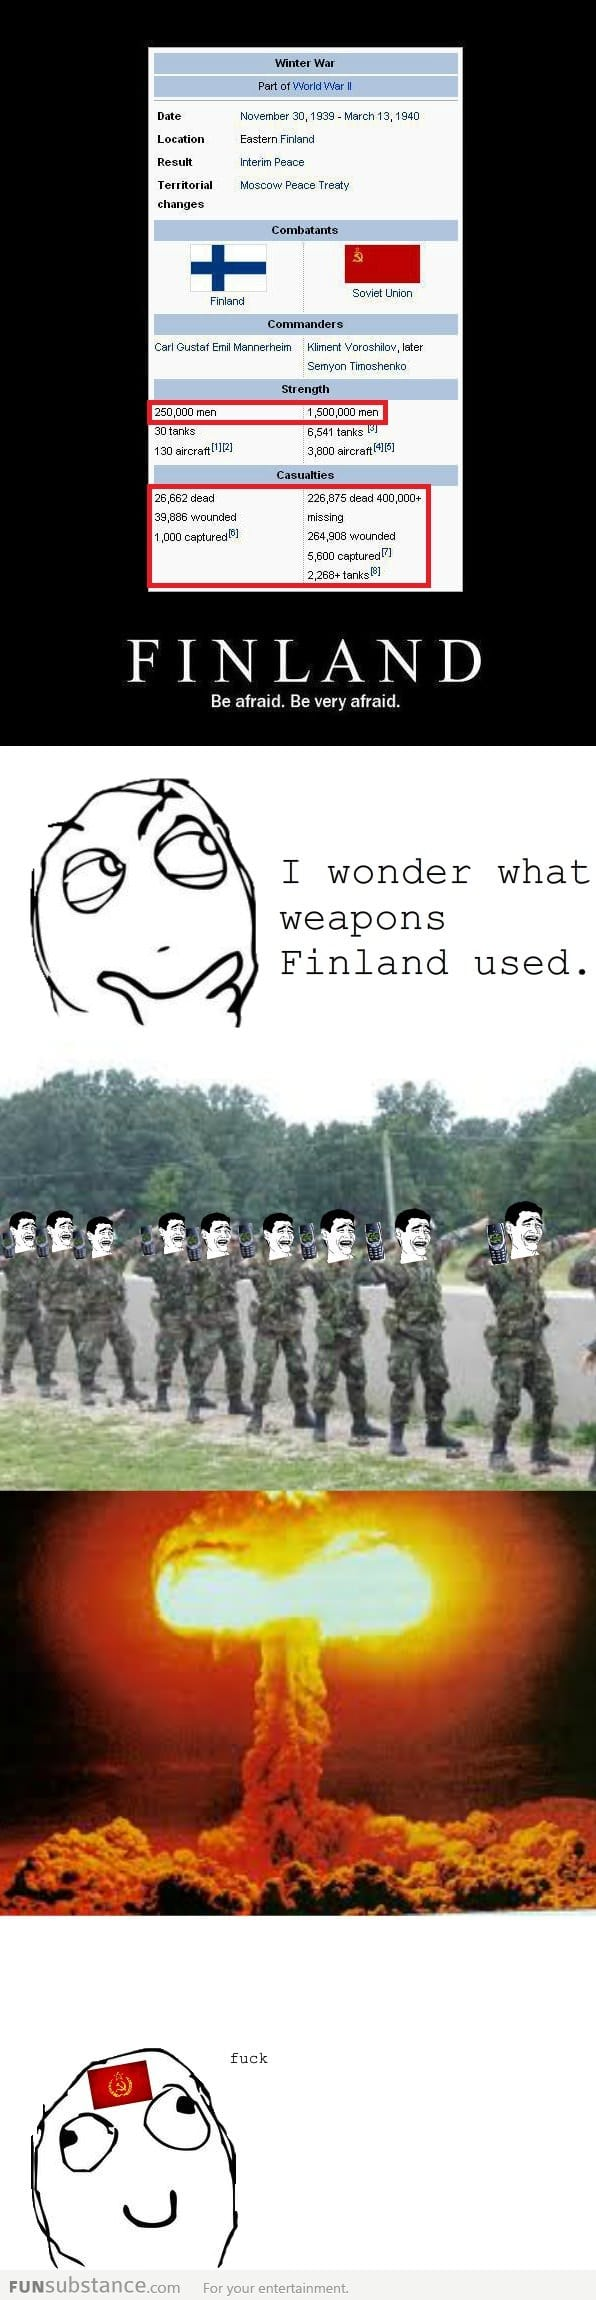 Finland is the boss!